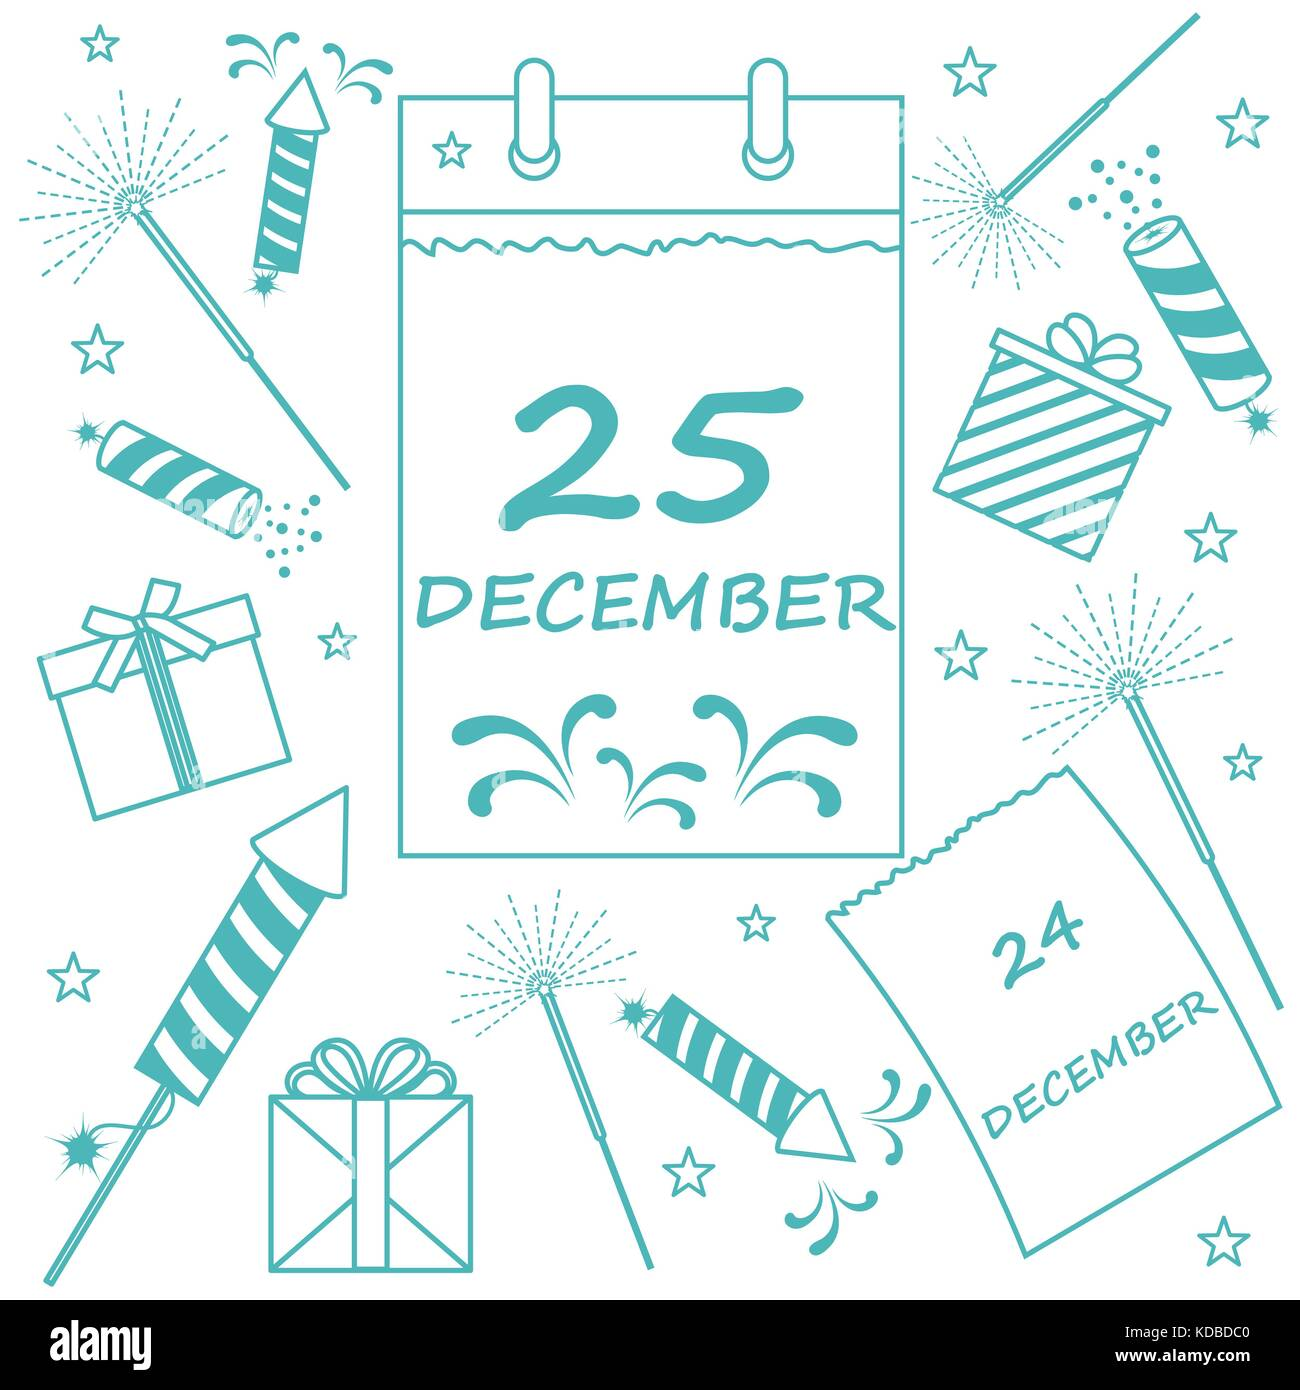 Vector illustration: calendar with christmas date page and gifts, sparklers, petards. Design for postcard, banner, - Stock Vector